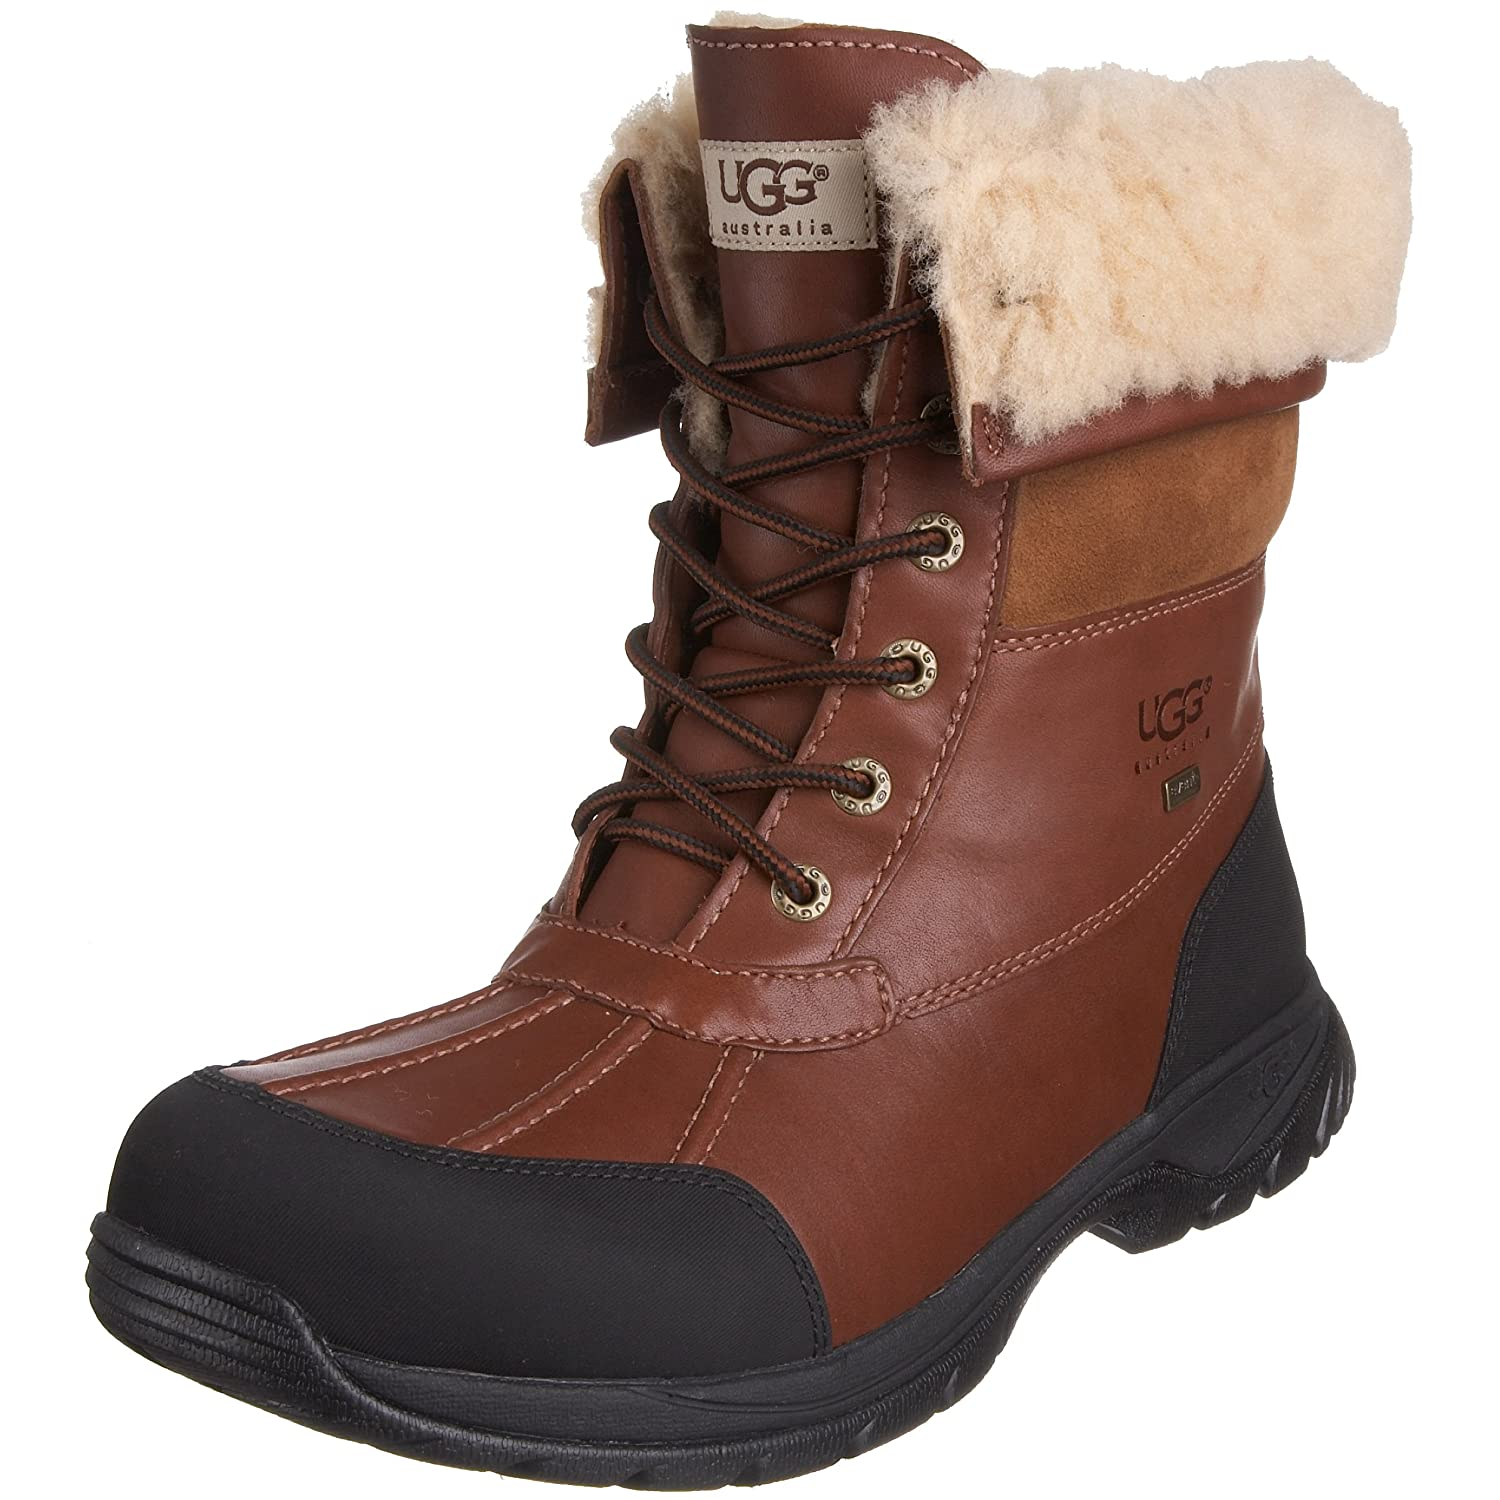 a54e70d2825 Ugg Men's Butte Worchester Pull On Boot 5521 9 UK: Amazon.co.uk ...